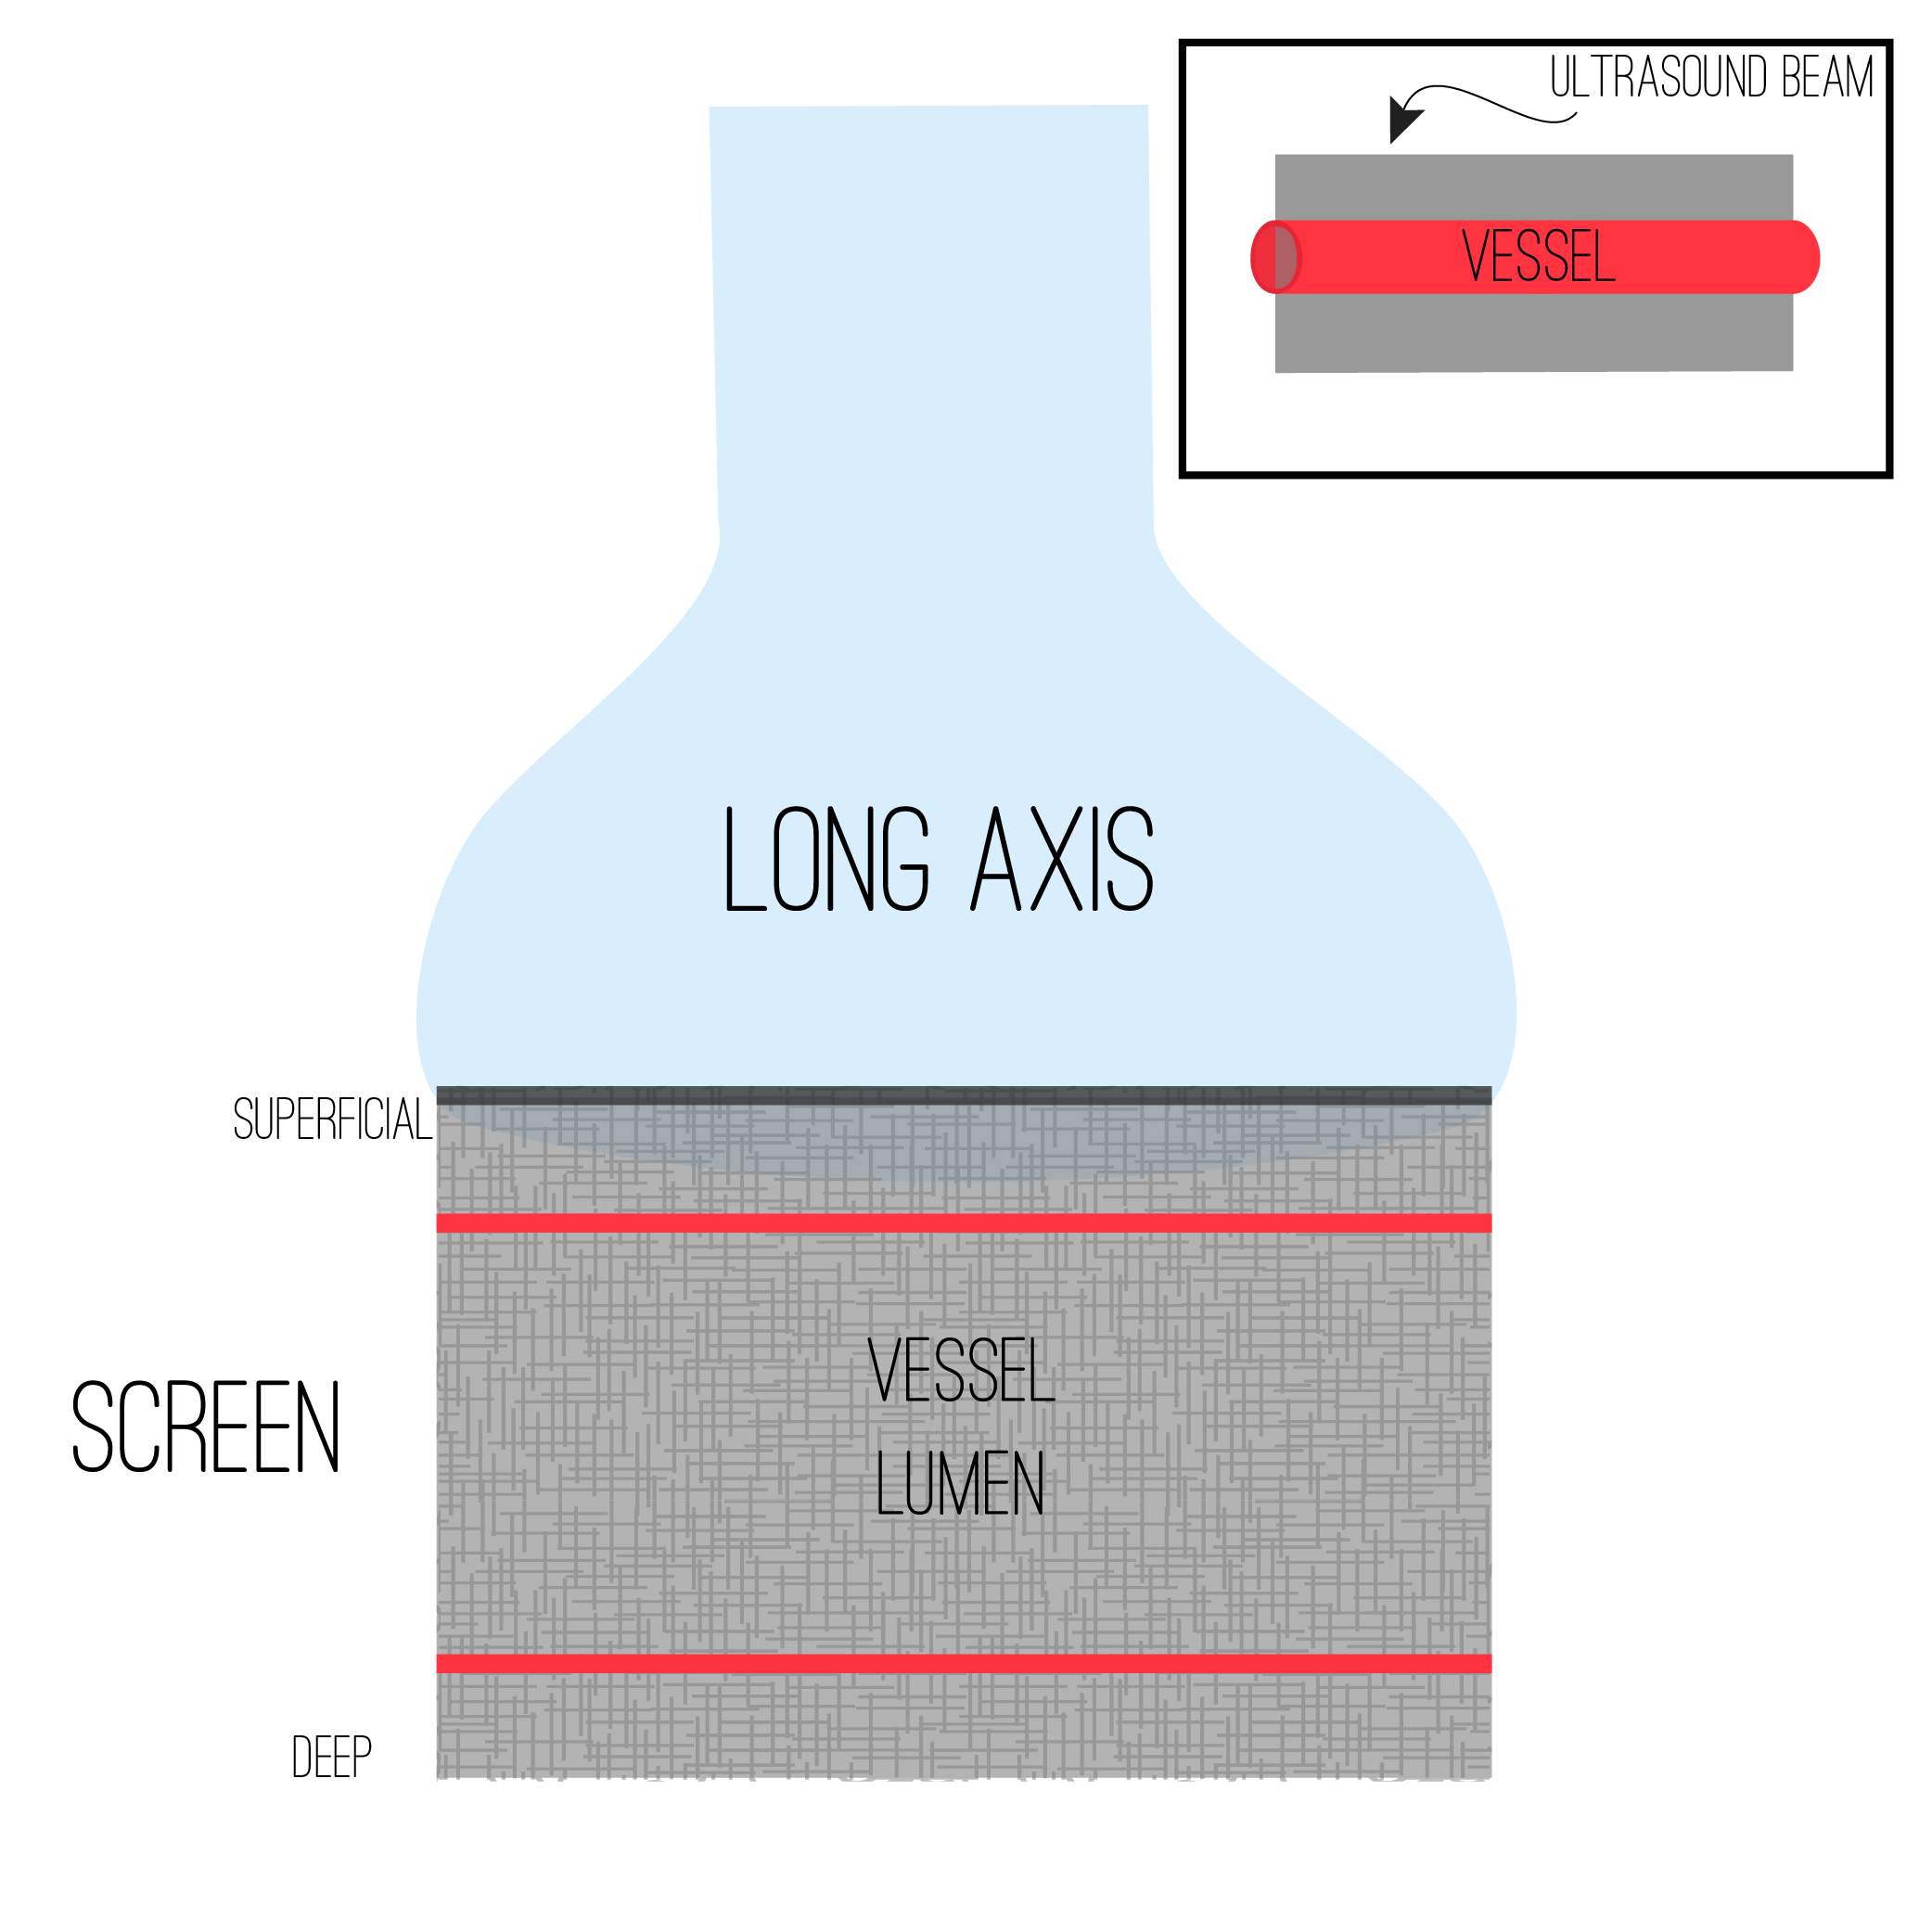 The long axis view slices your target longitudinally resulting usually in a tube-like structure.